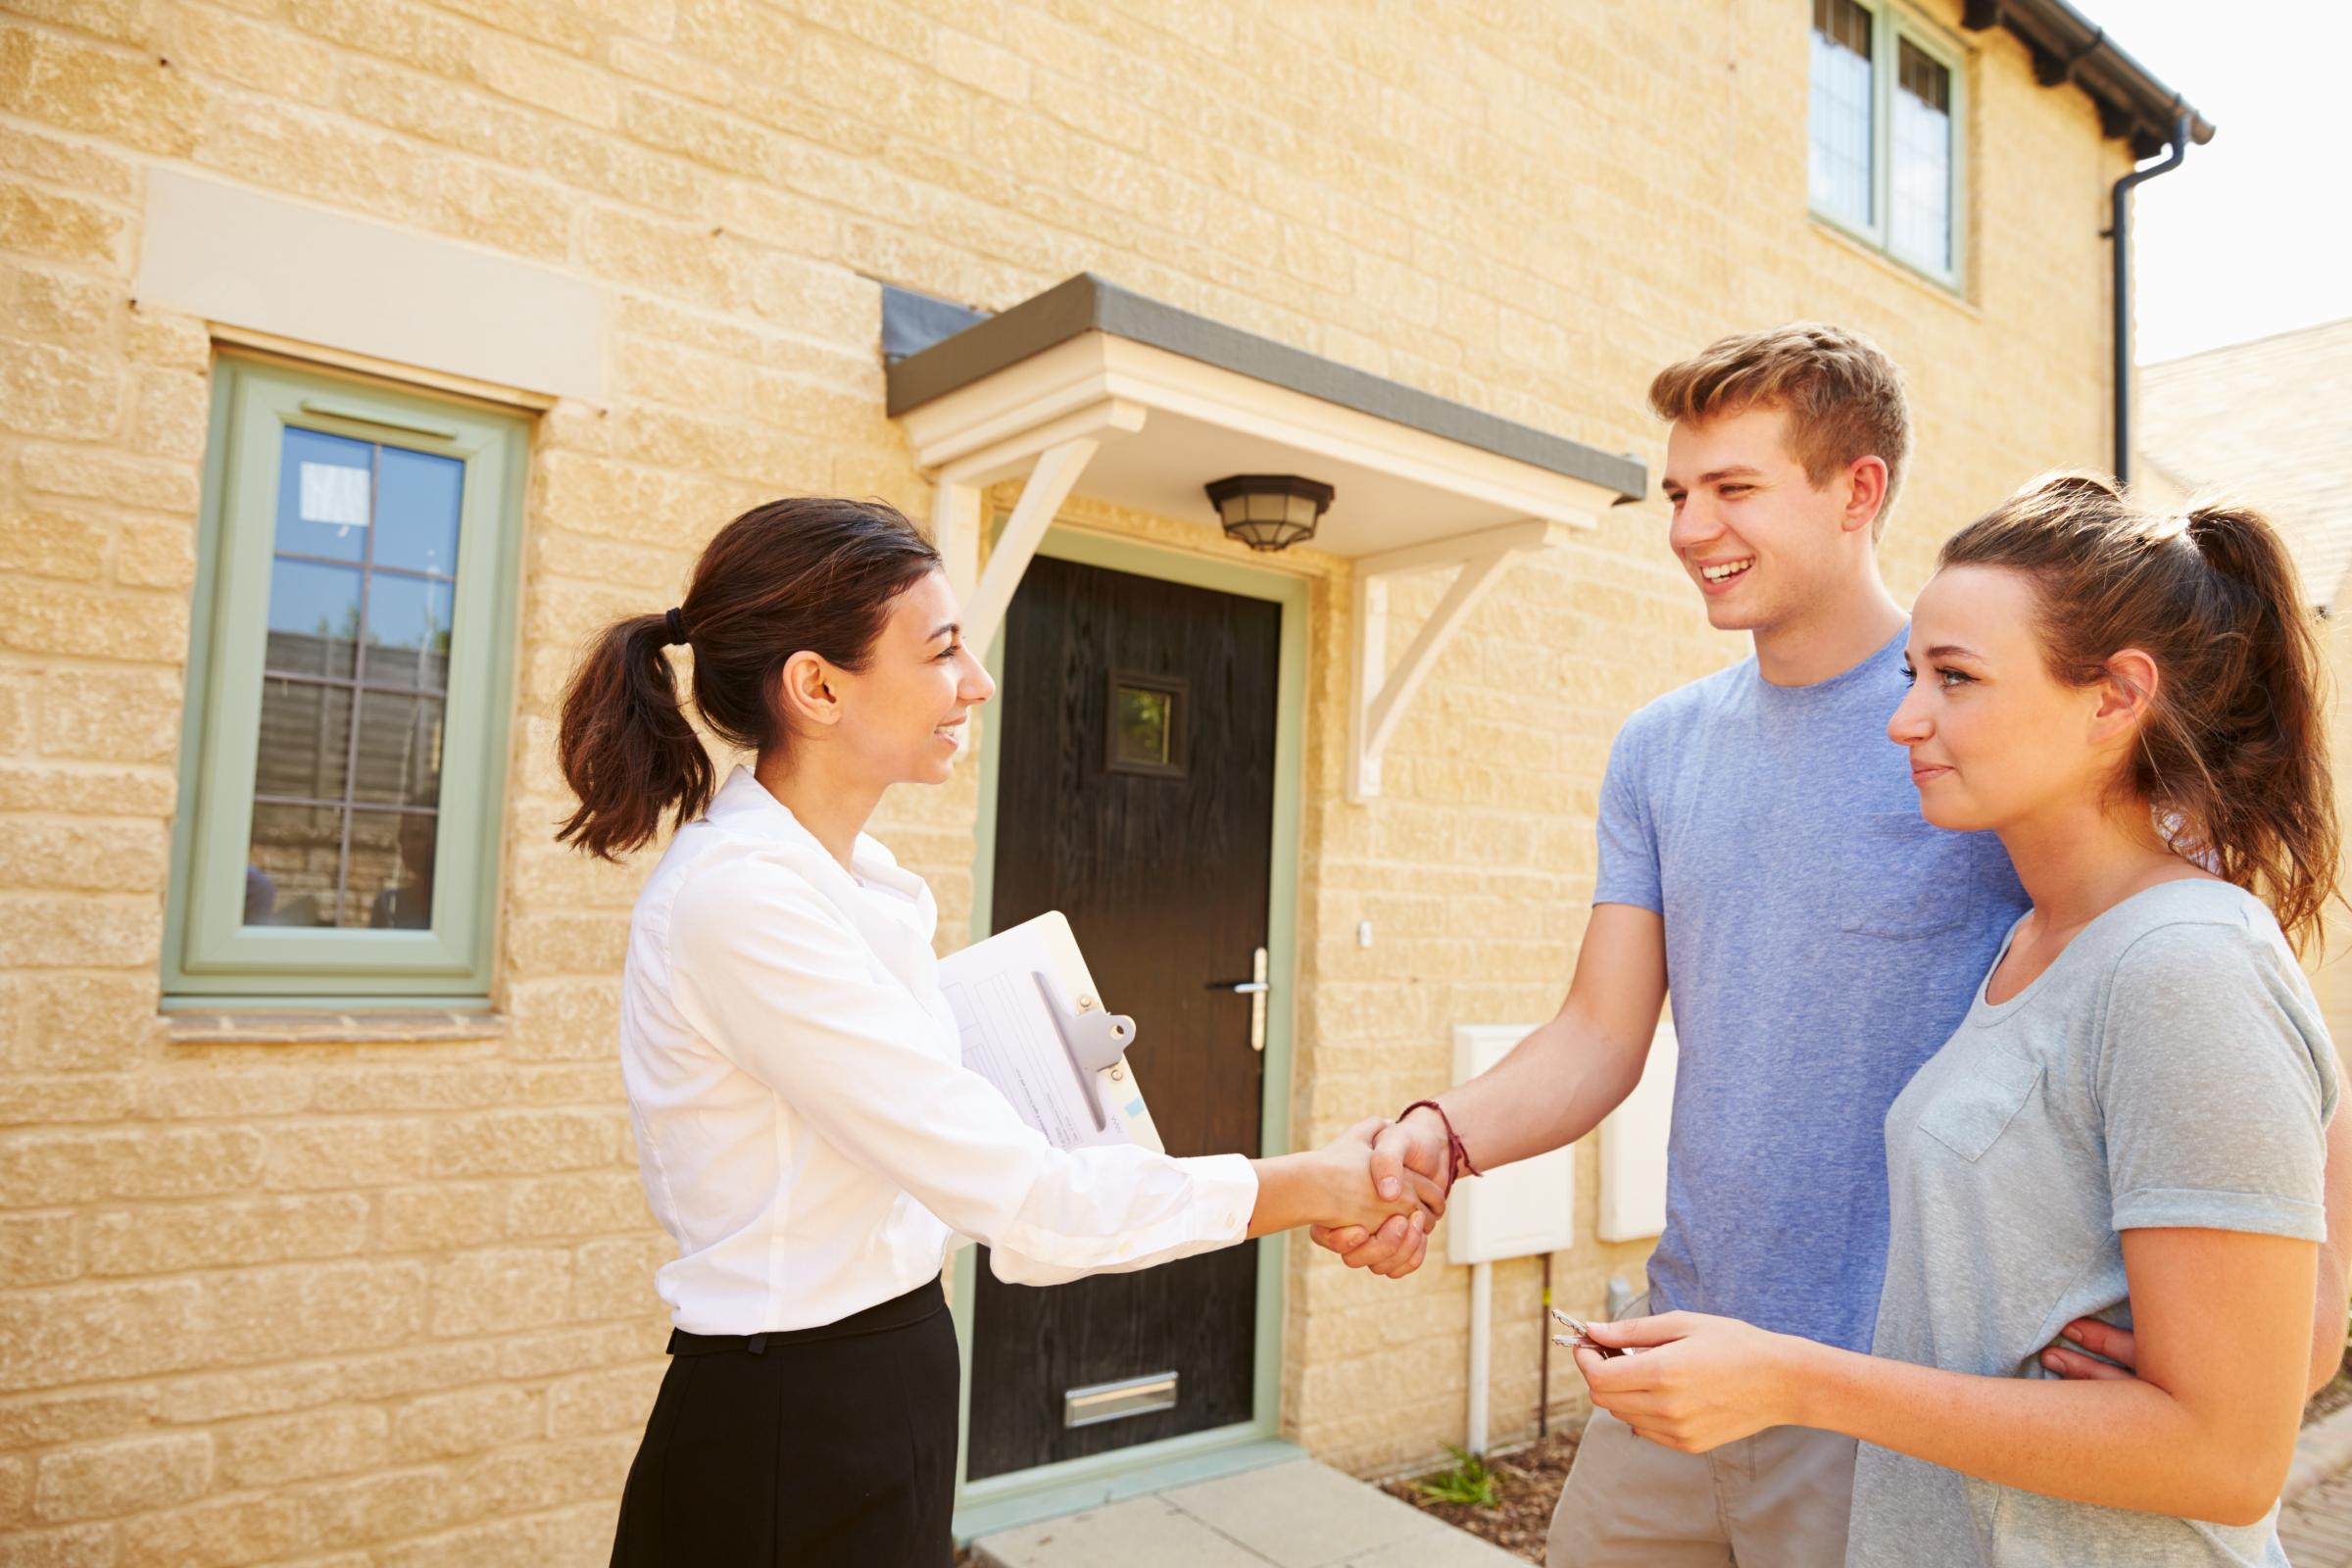 PROPERTY: Young buyers at their first home